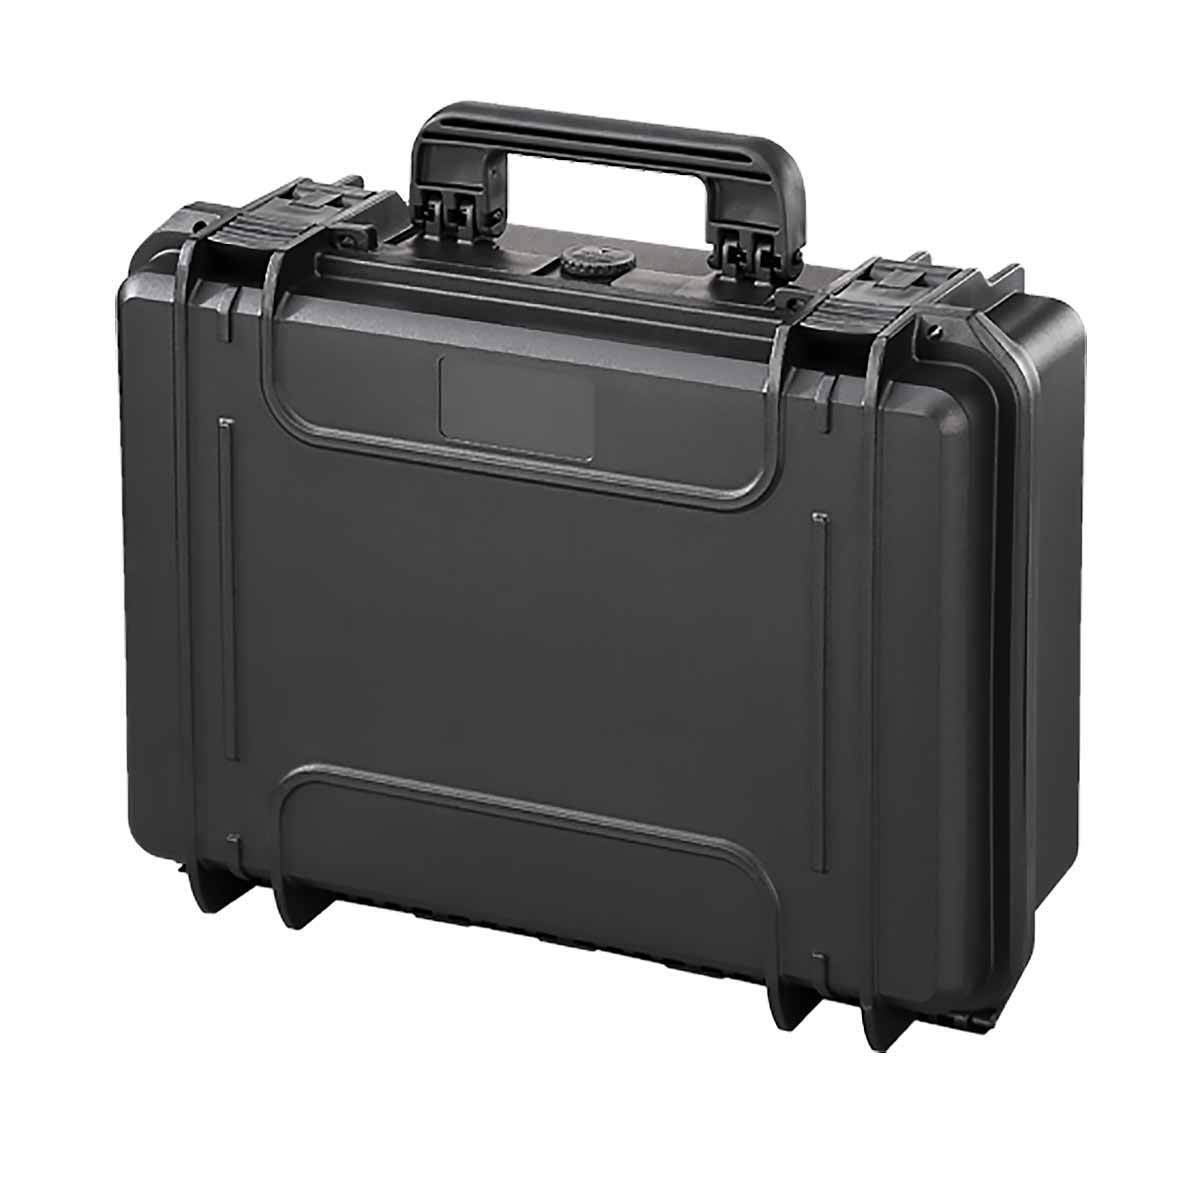 Max MAX300S Waterproof Laptop Travel Briefcase Hard Case Box With Foam Black